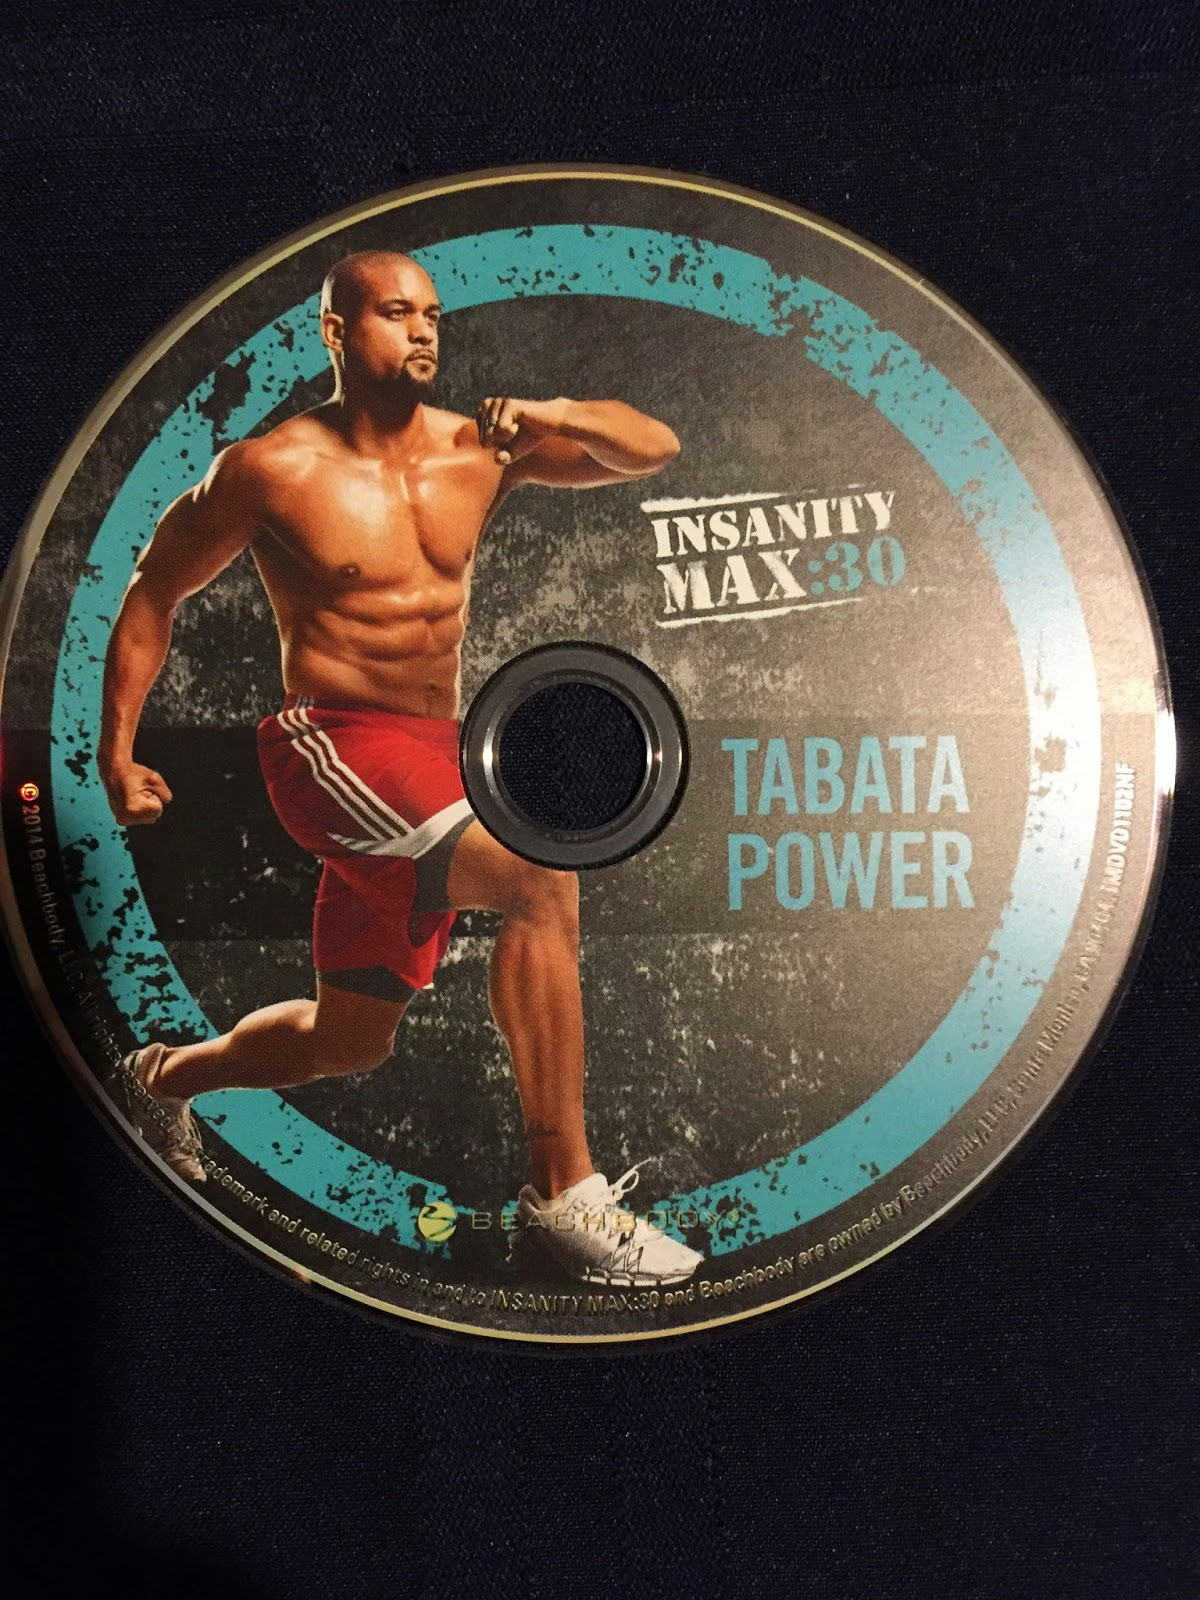 fill me with meaning: Insanity Max:30 Review: Tabata Power